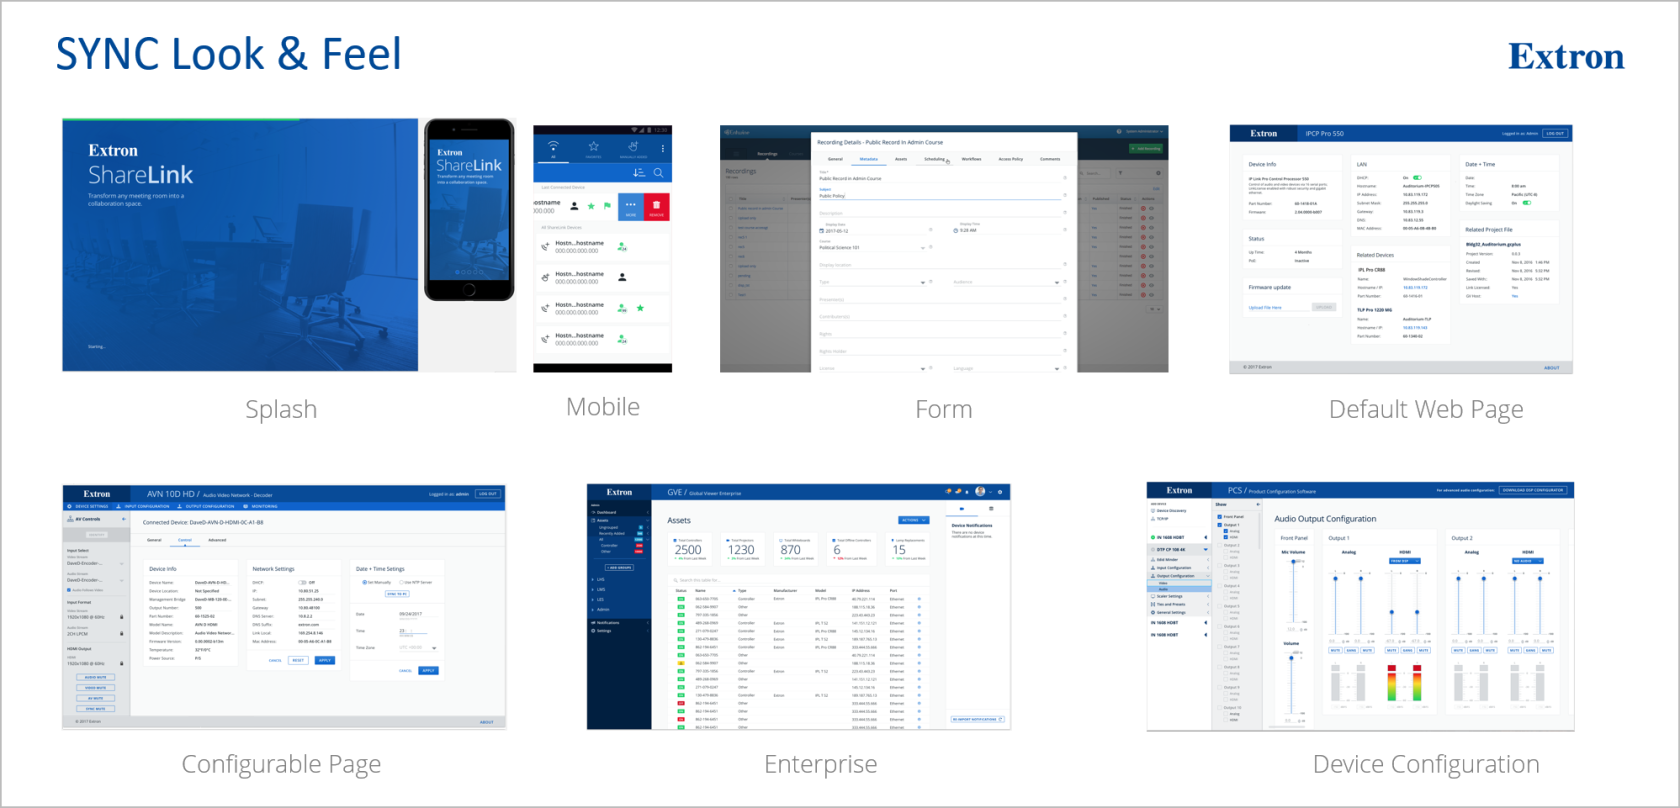 Showcasing how applying a design system can create consistency throughout our product line.